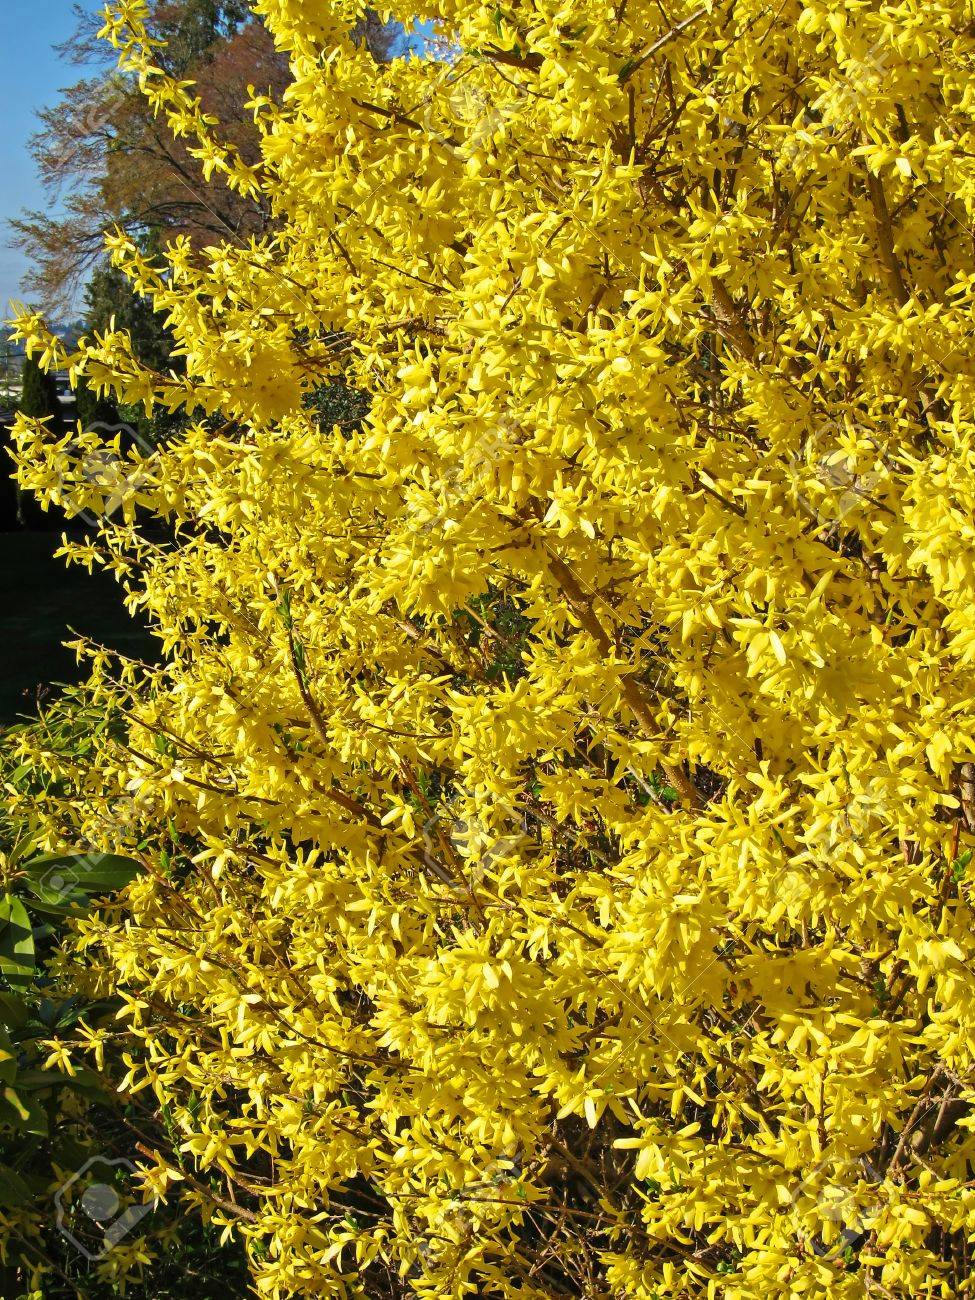 This is an early spring shrub in full bloom with its bright this is an early spring shrub in full bloom with its bright yellow flowers dhlflorist Gallery